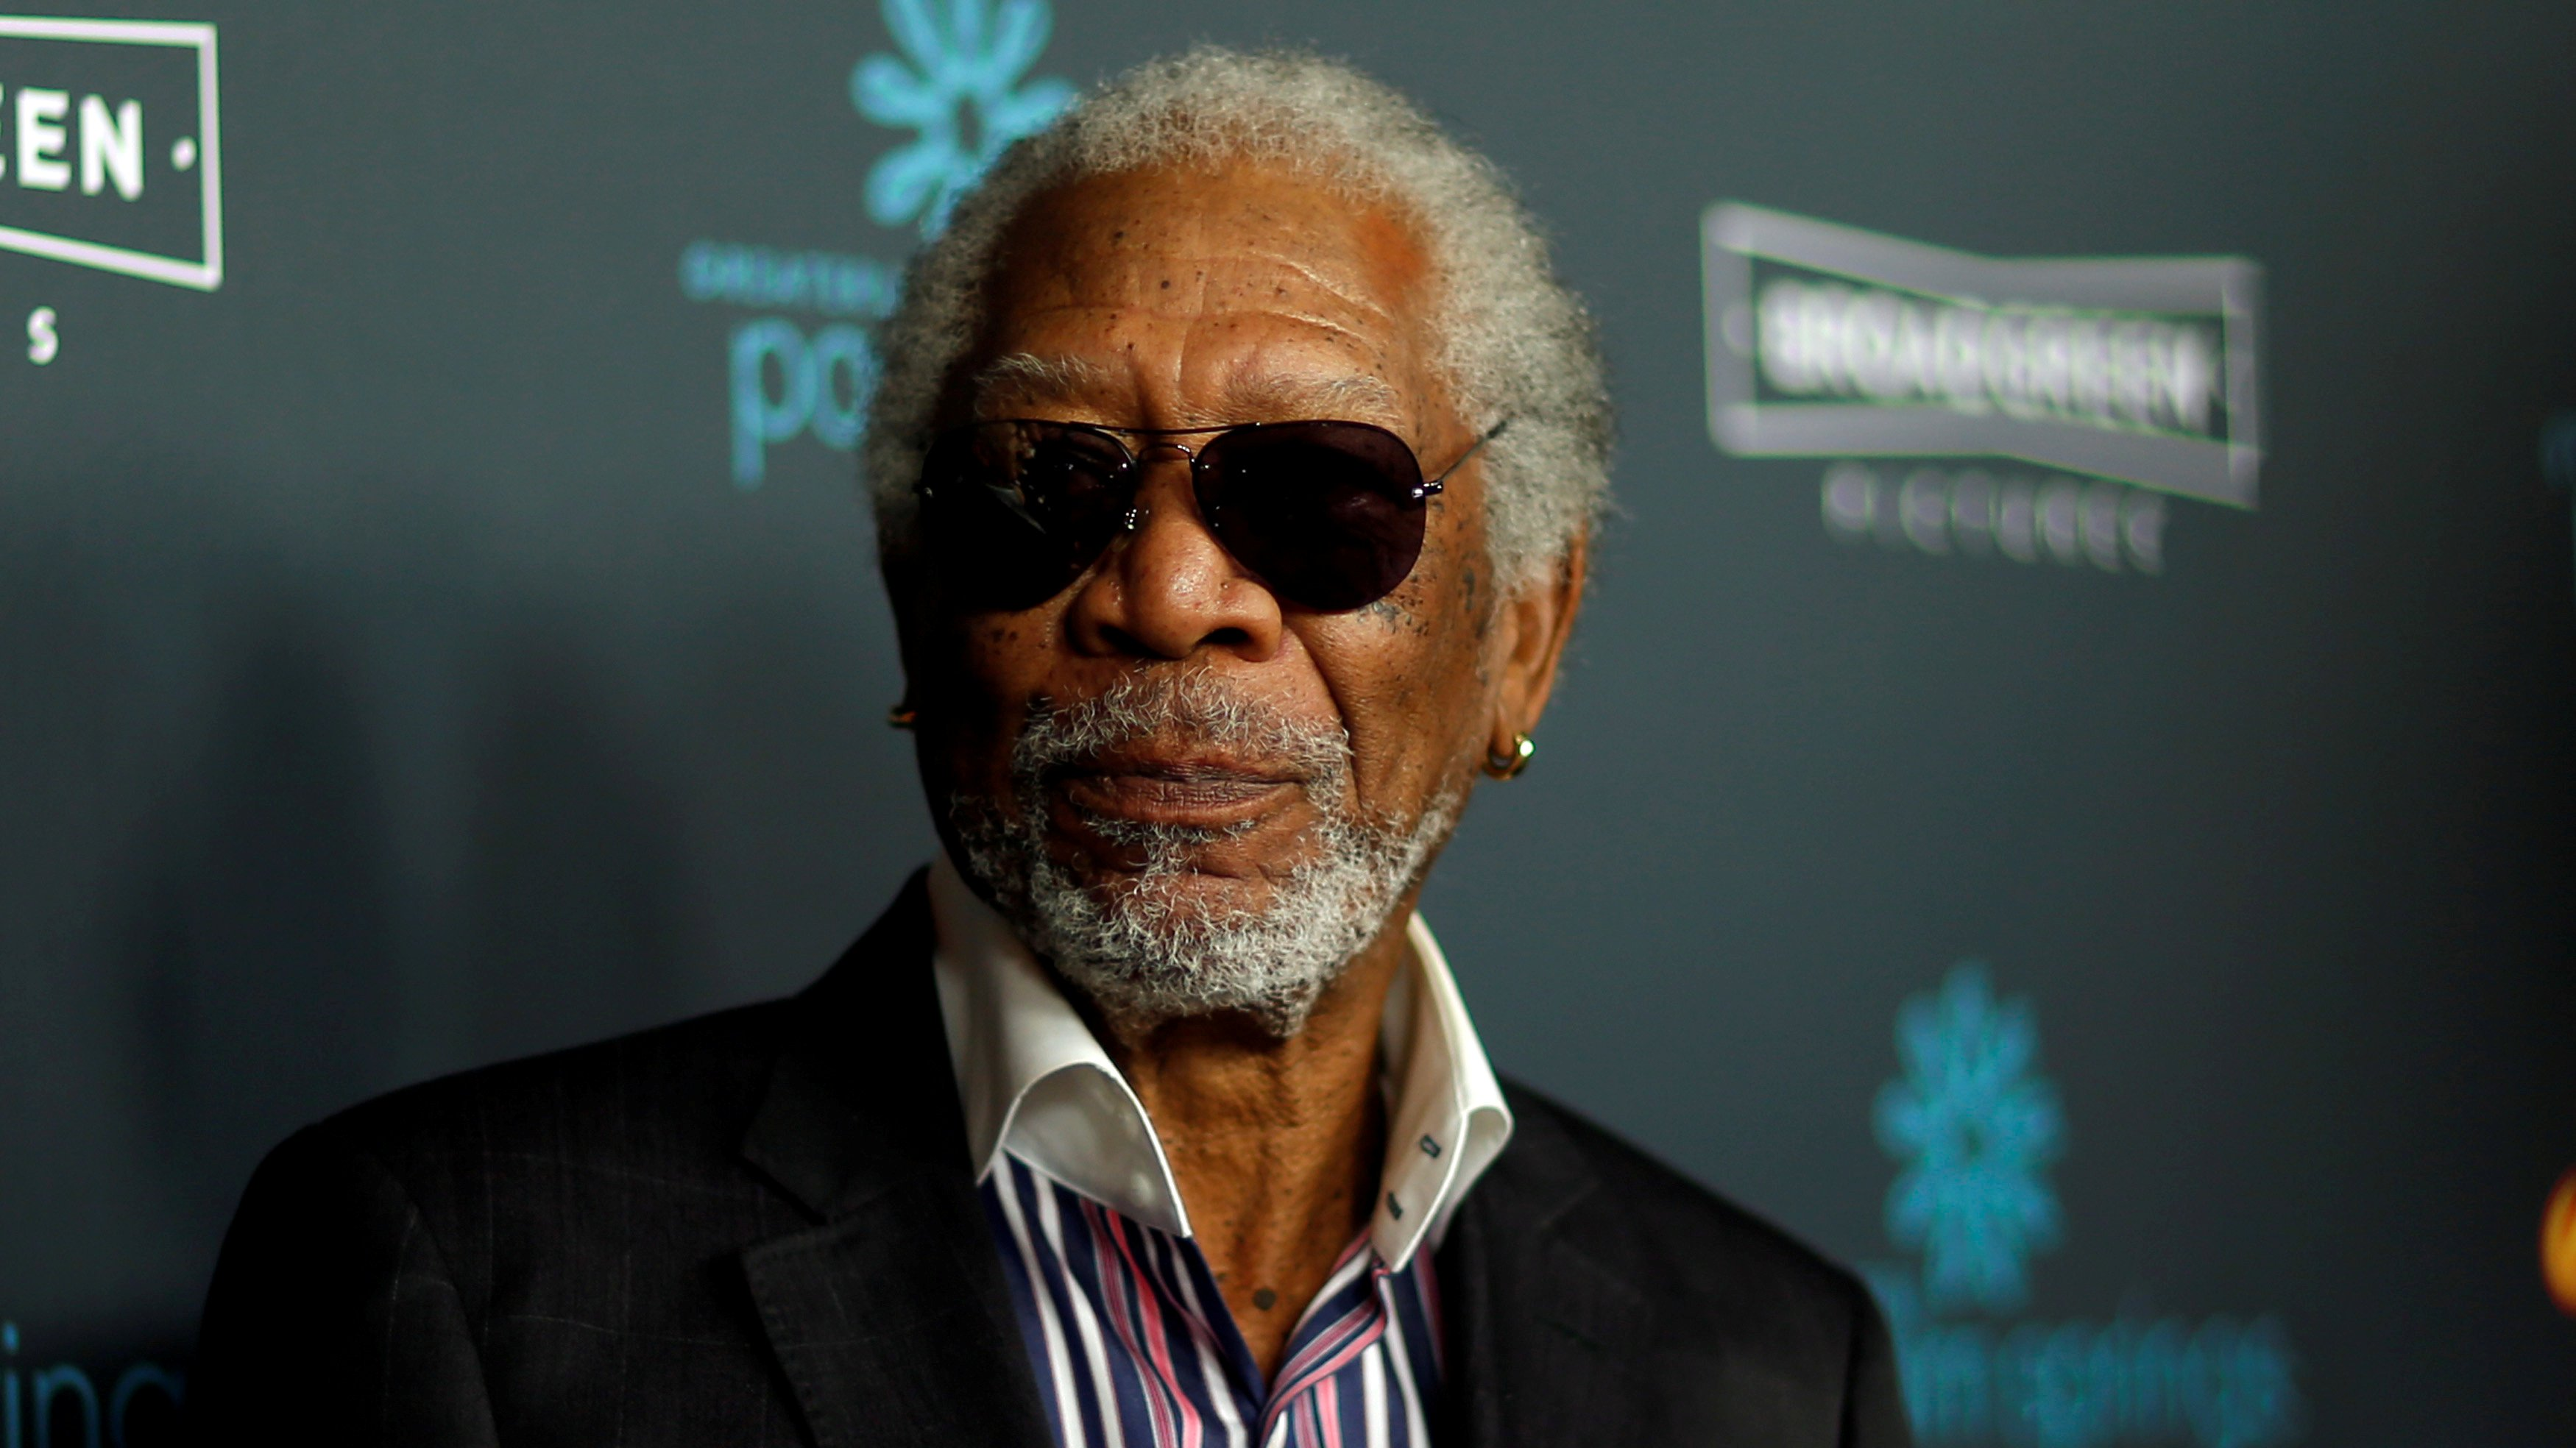 """FILE PHOTO: Cast member Morgan Freeman poses at the premiere for """"Just Getting Started"""" in Los Angeles, California, U.S., December 7, 2017. REUTERS/Mario Anzuoni/File Photo"""